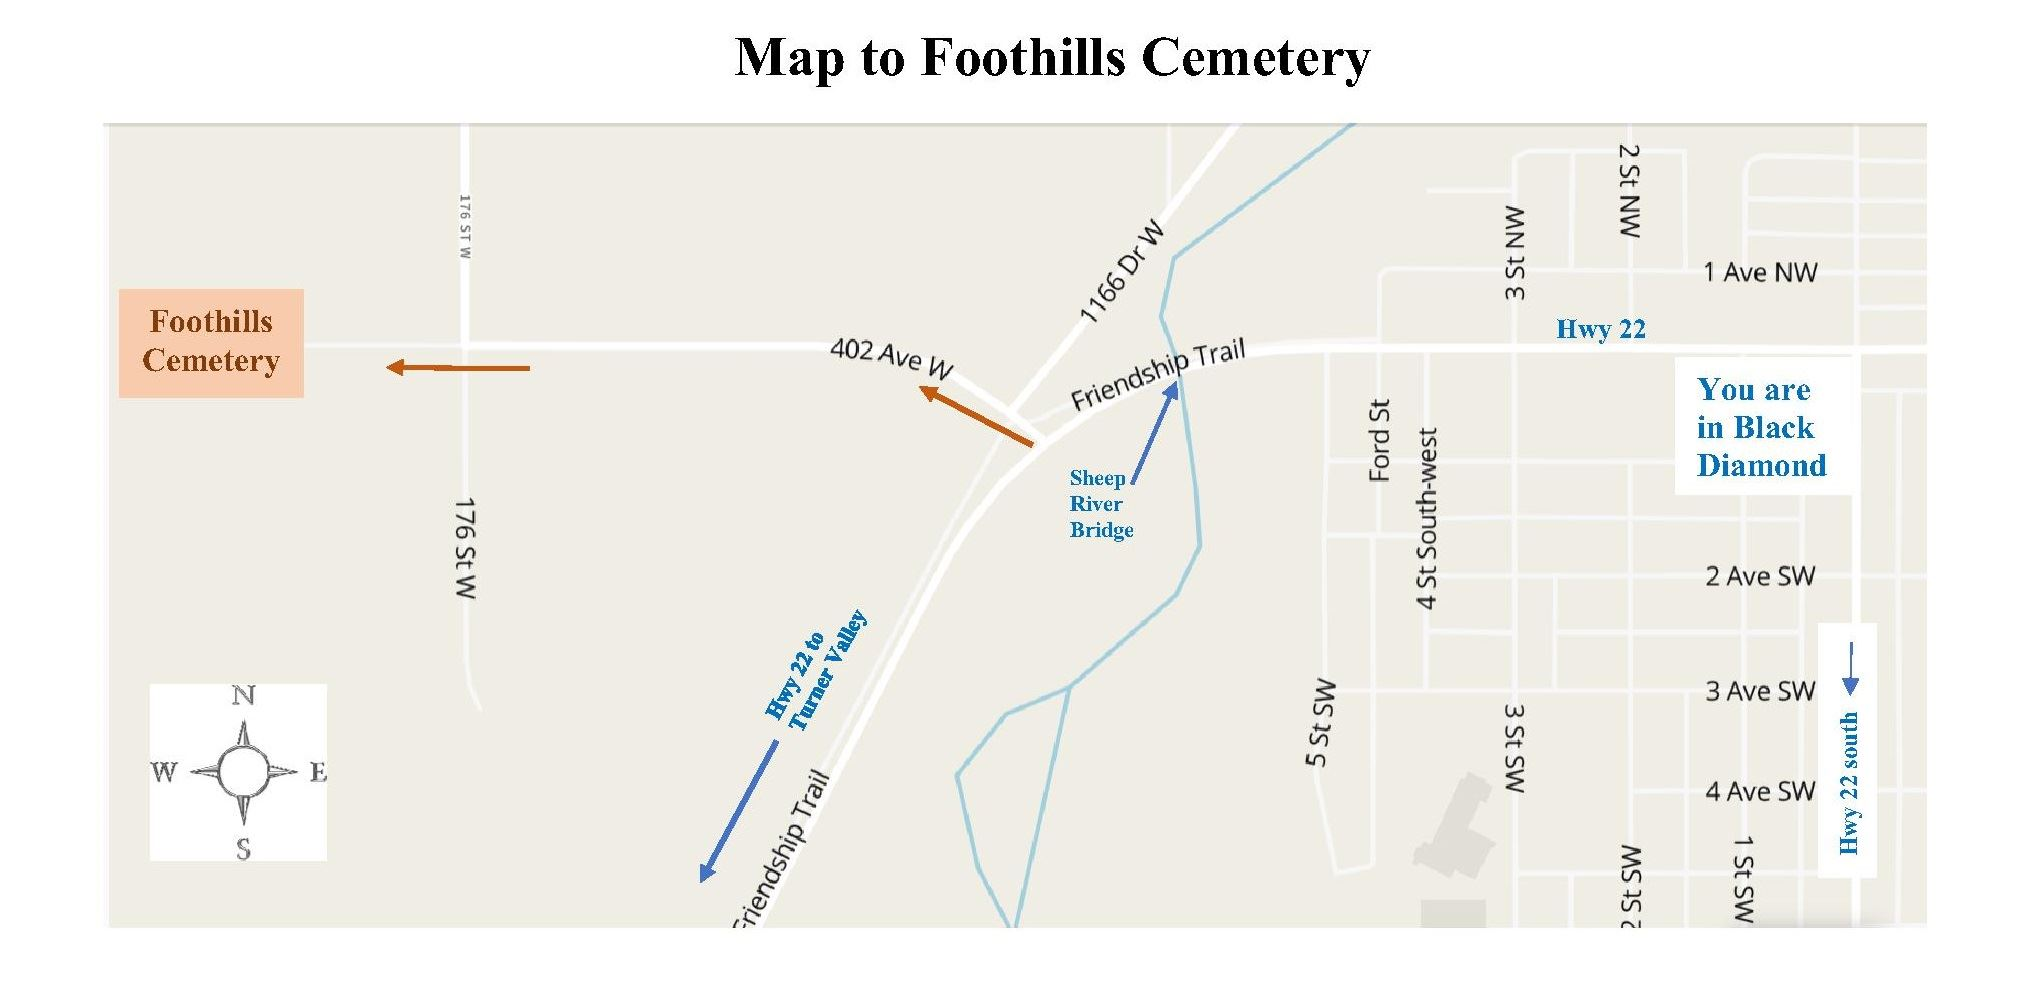 Map to Foothills Cemetery